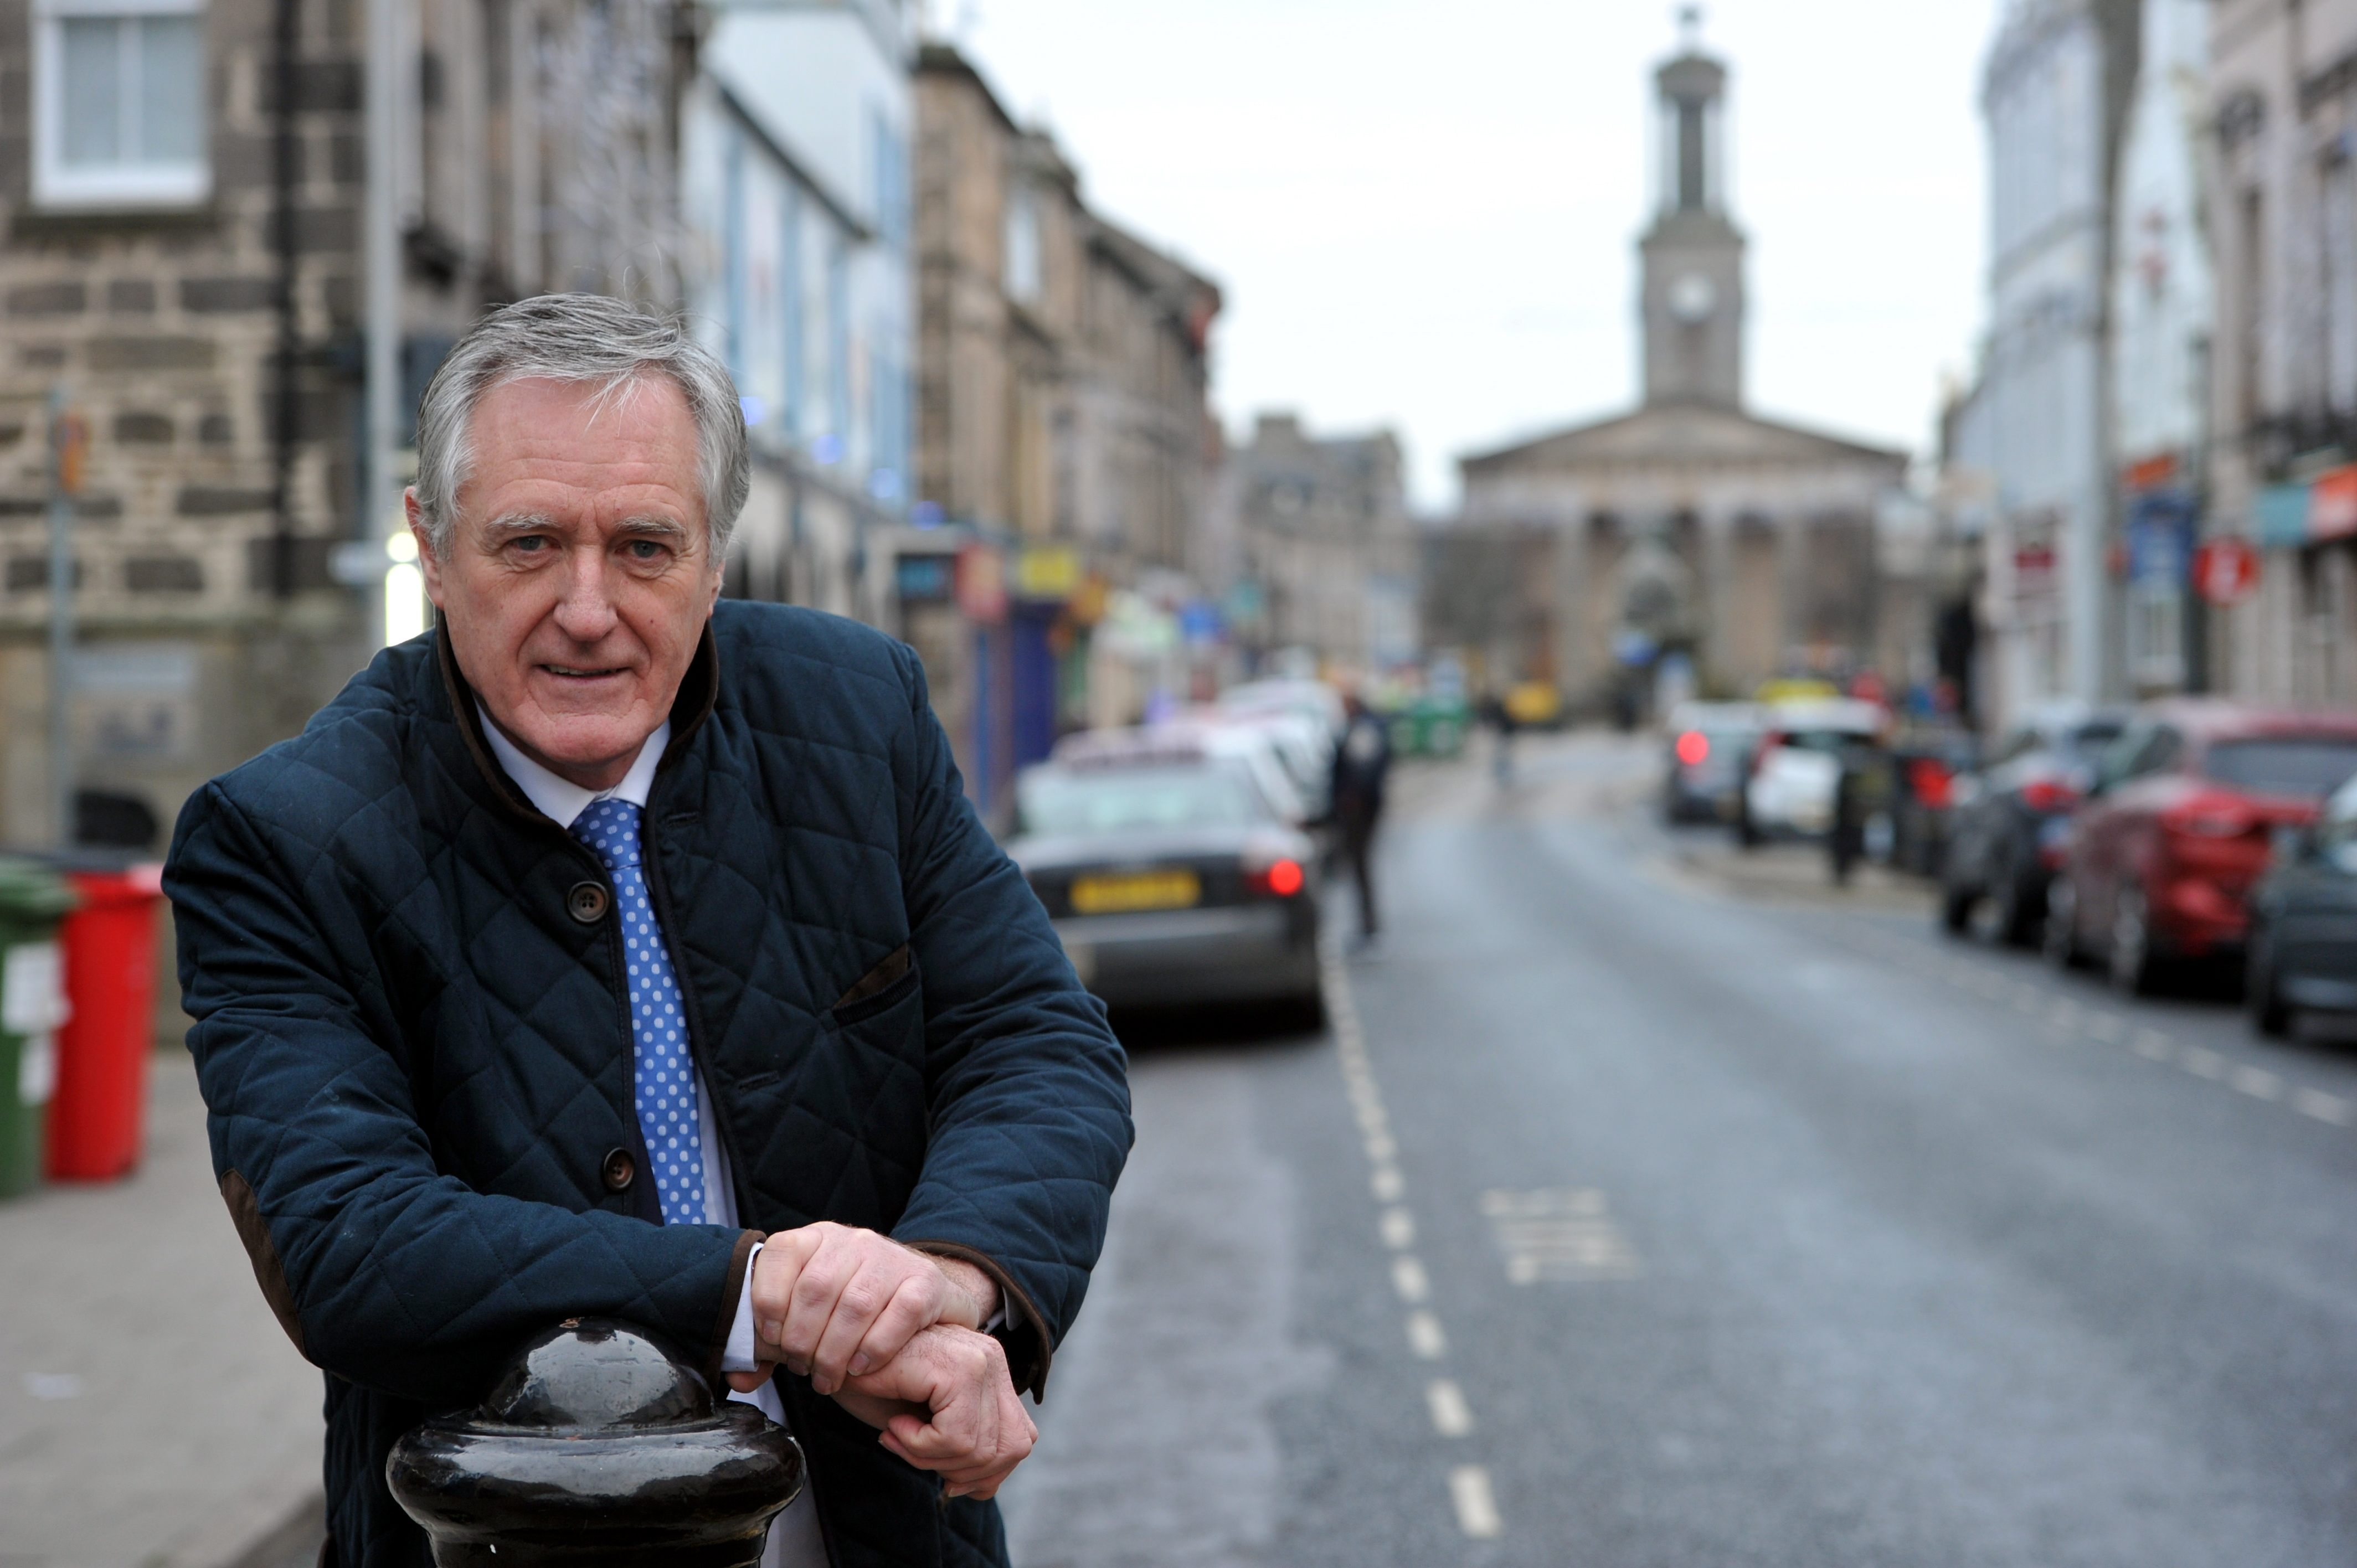 Heldon and Laich councillor John Cowe in Elgin town centre.